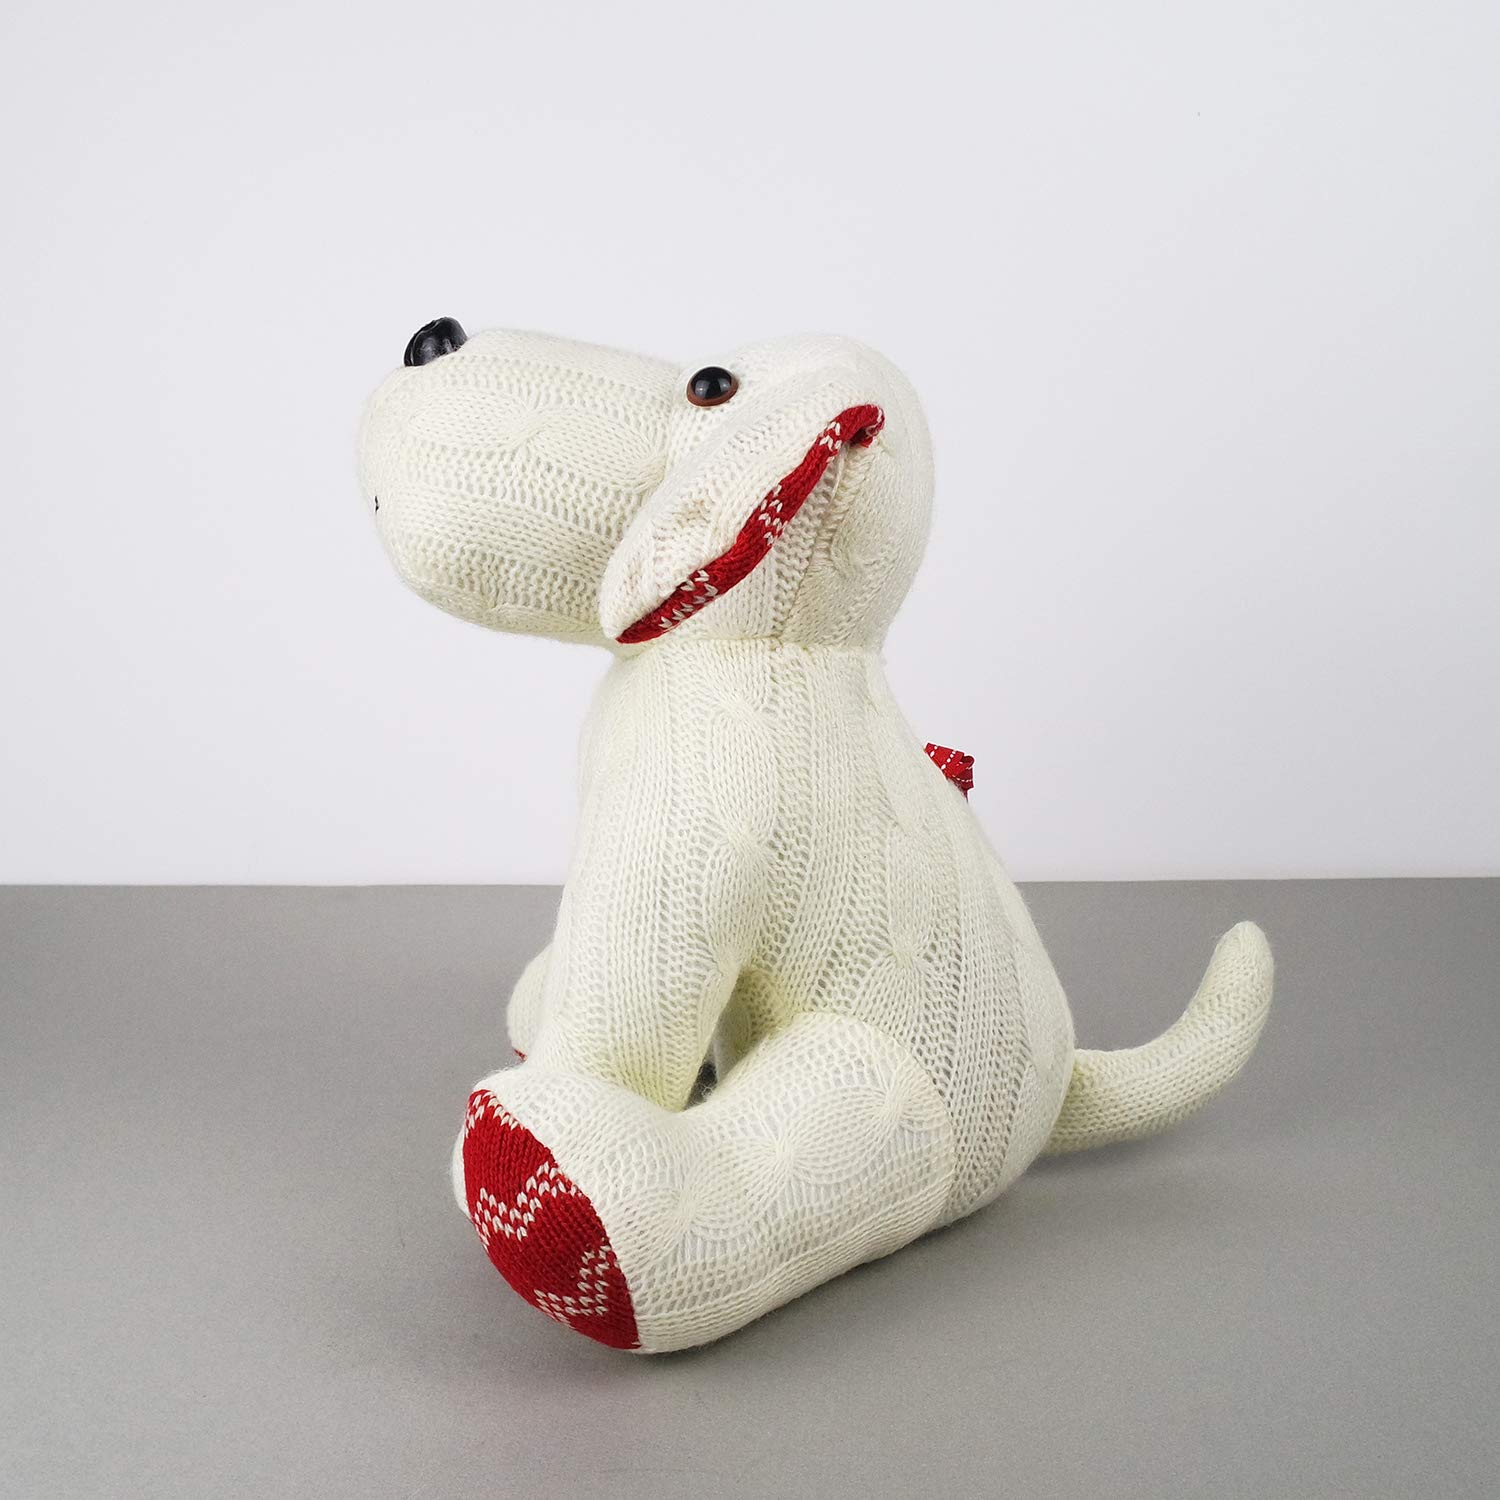 Stuffed Animal White Dog Door Stopper 1.73lb Home Decor Cable Knit Pattern by dwelling (Image #5)